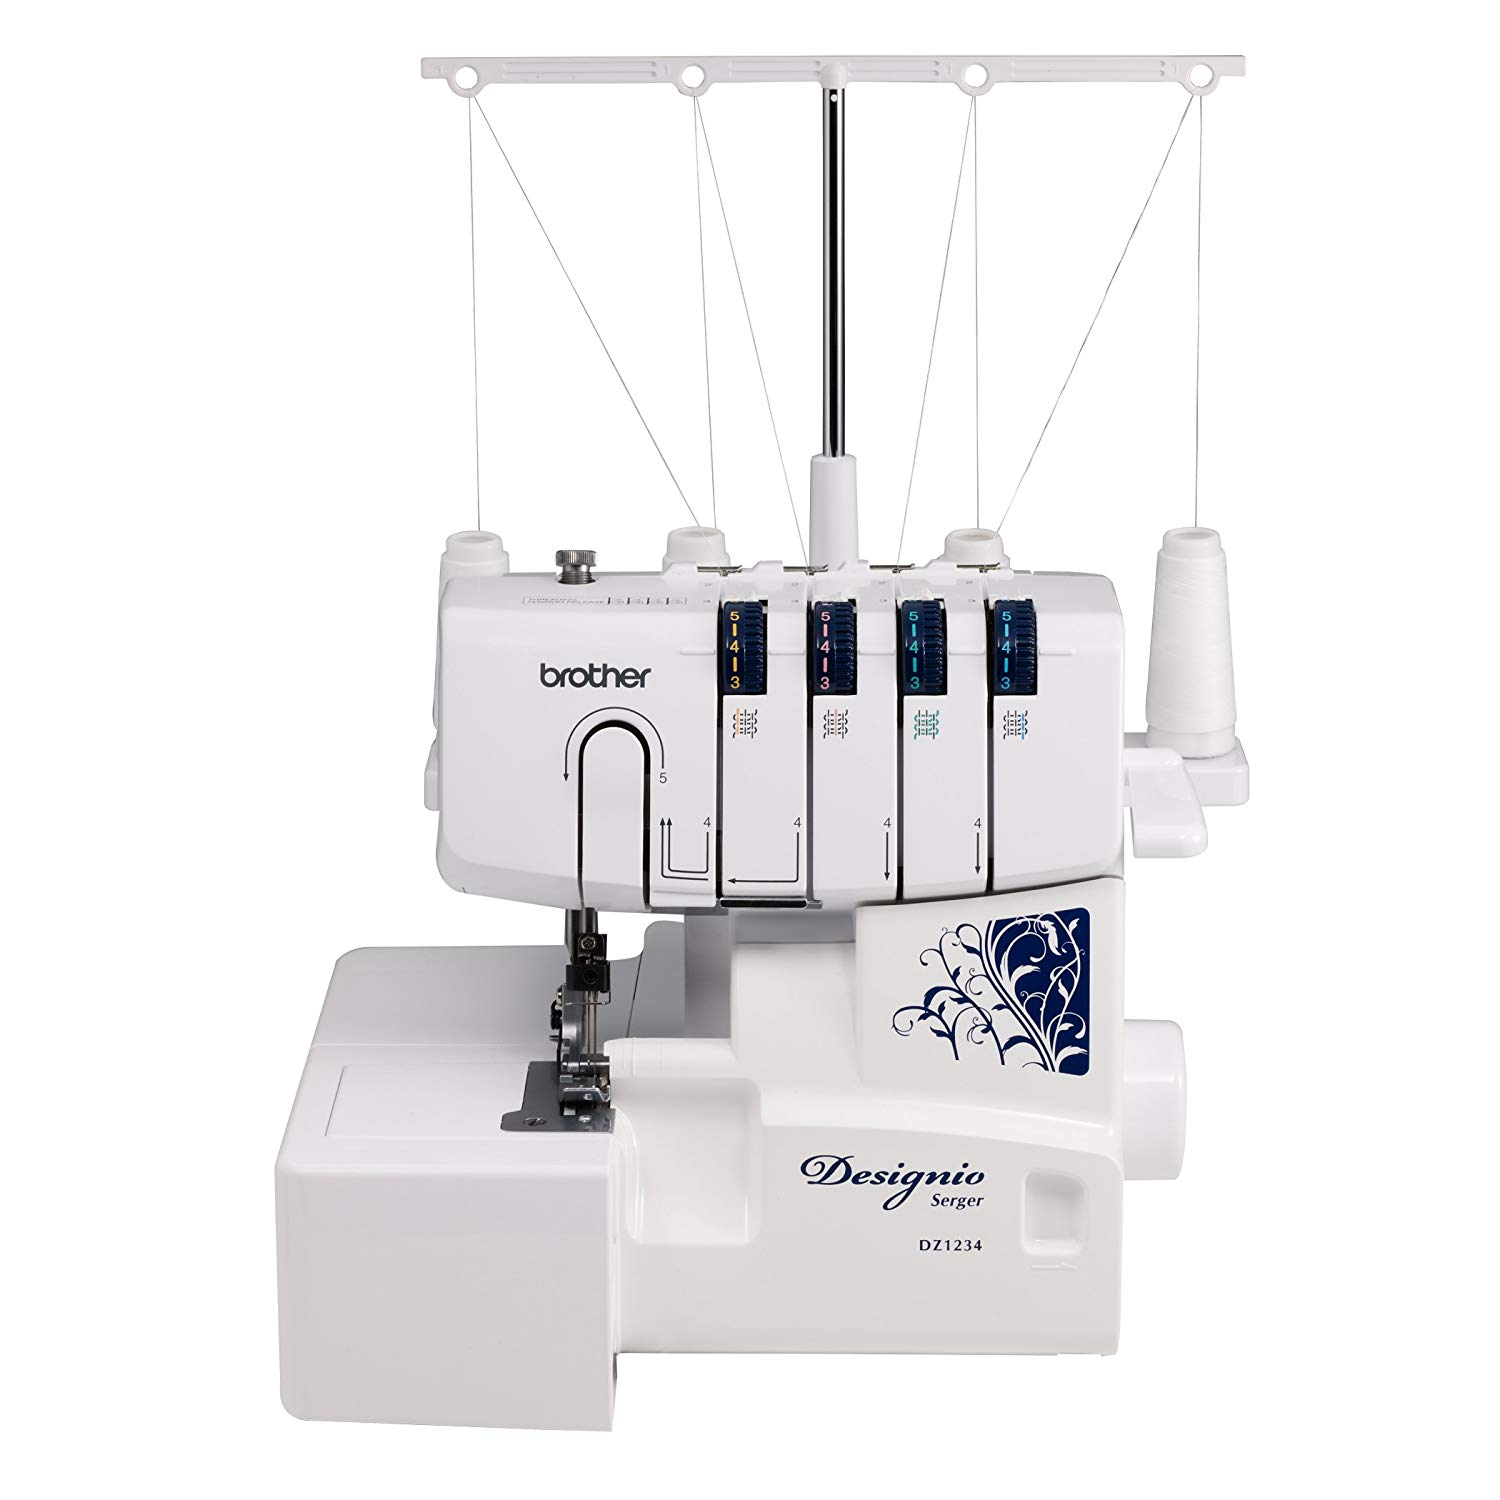 brother designio serger